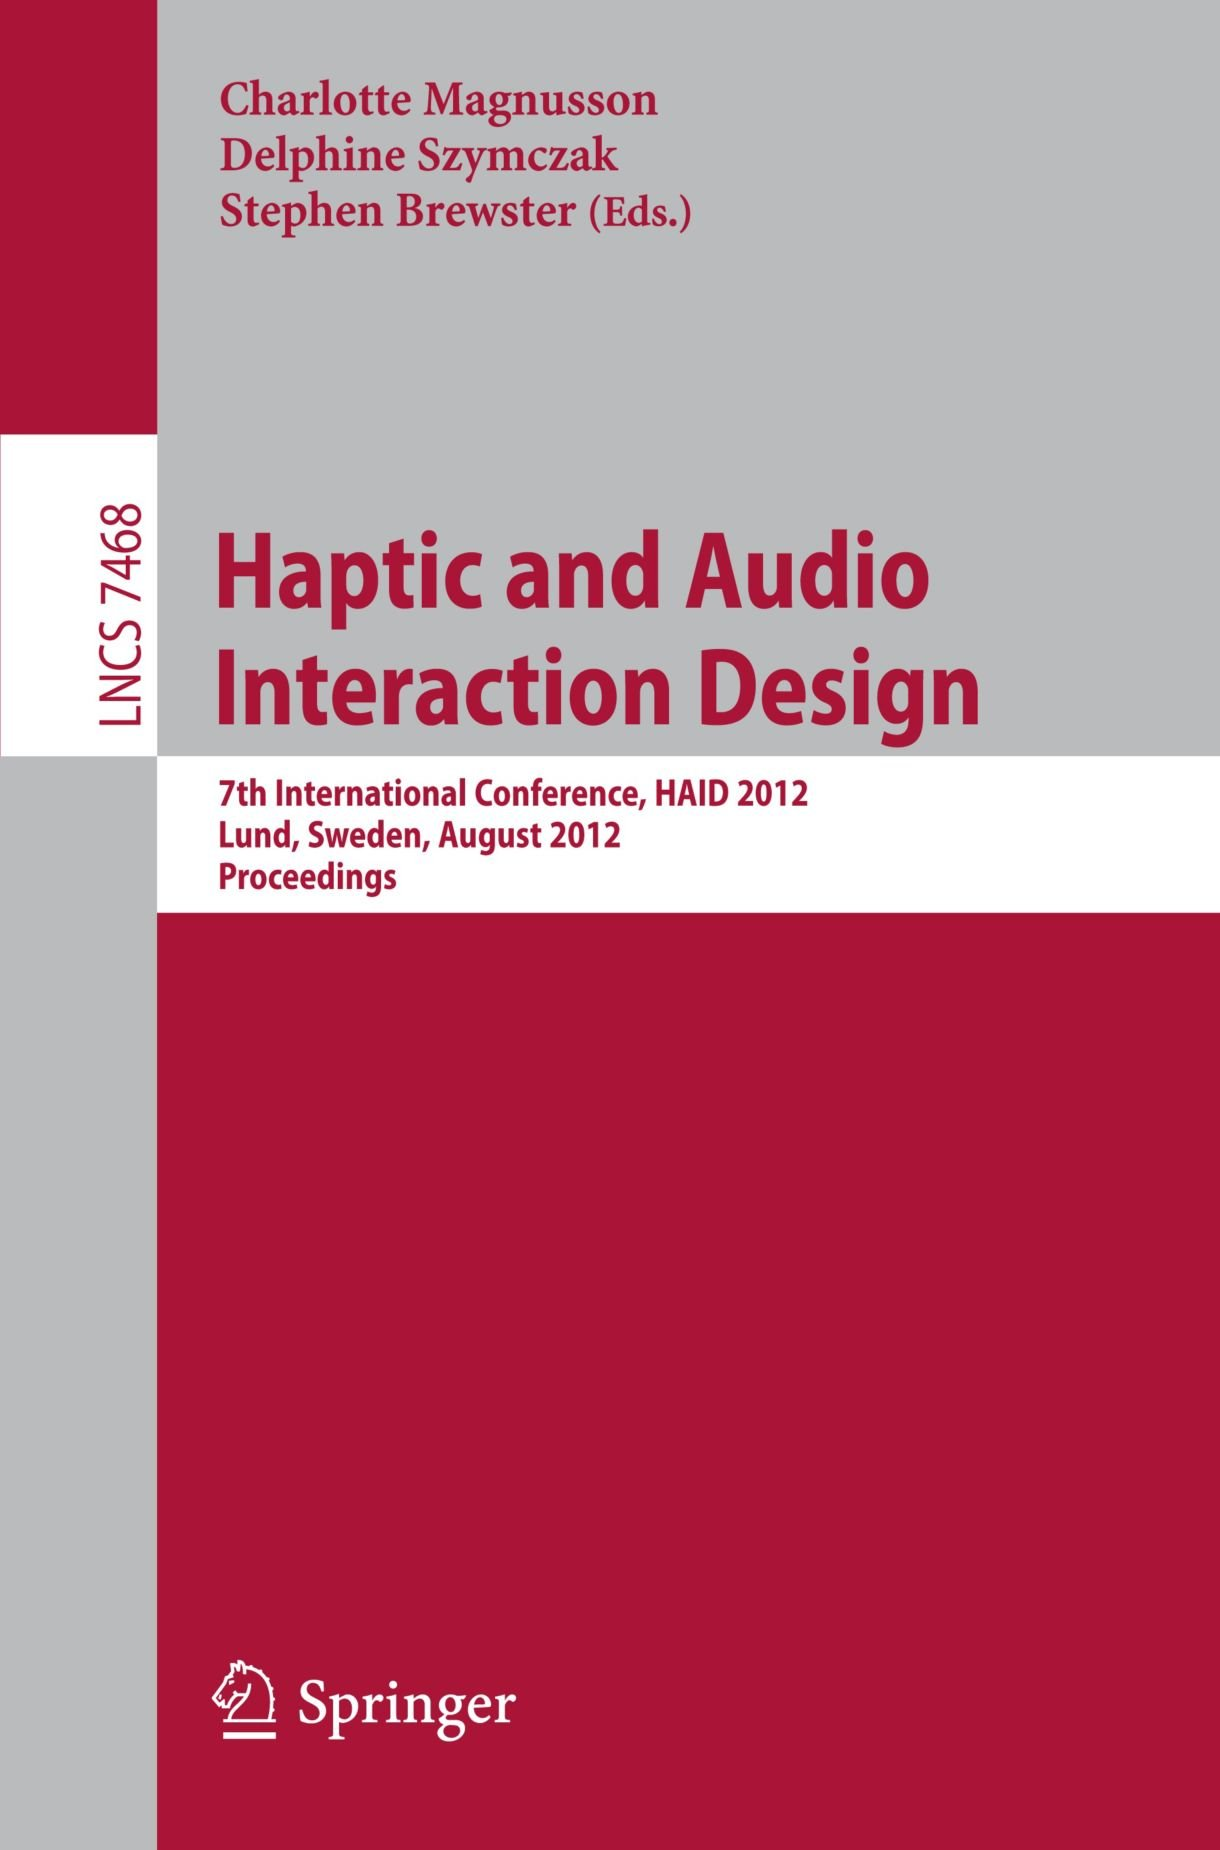 Haptic and Audio Interaction Design: 7th International Conference, HAID 2012, Lund, Sweden, August 23-24, 2012, Proceedings (Lecture Notes in Computer Science)